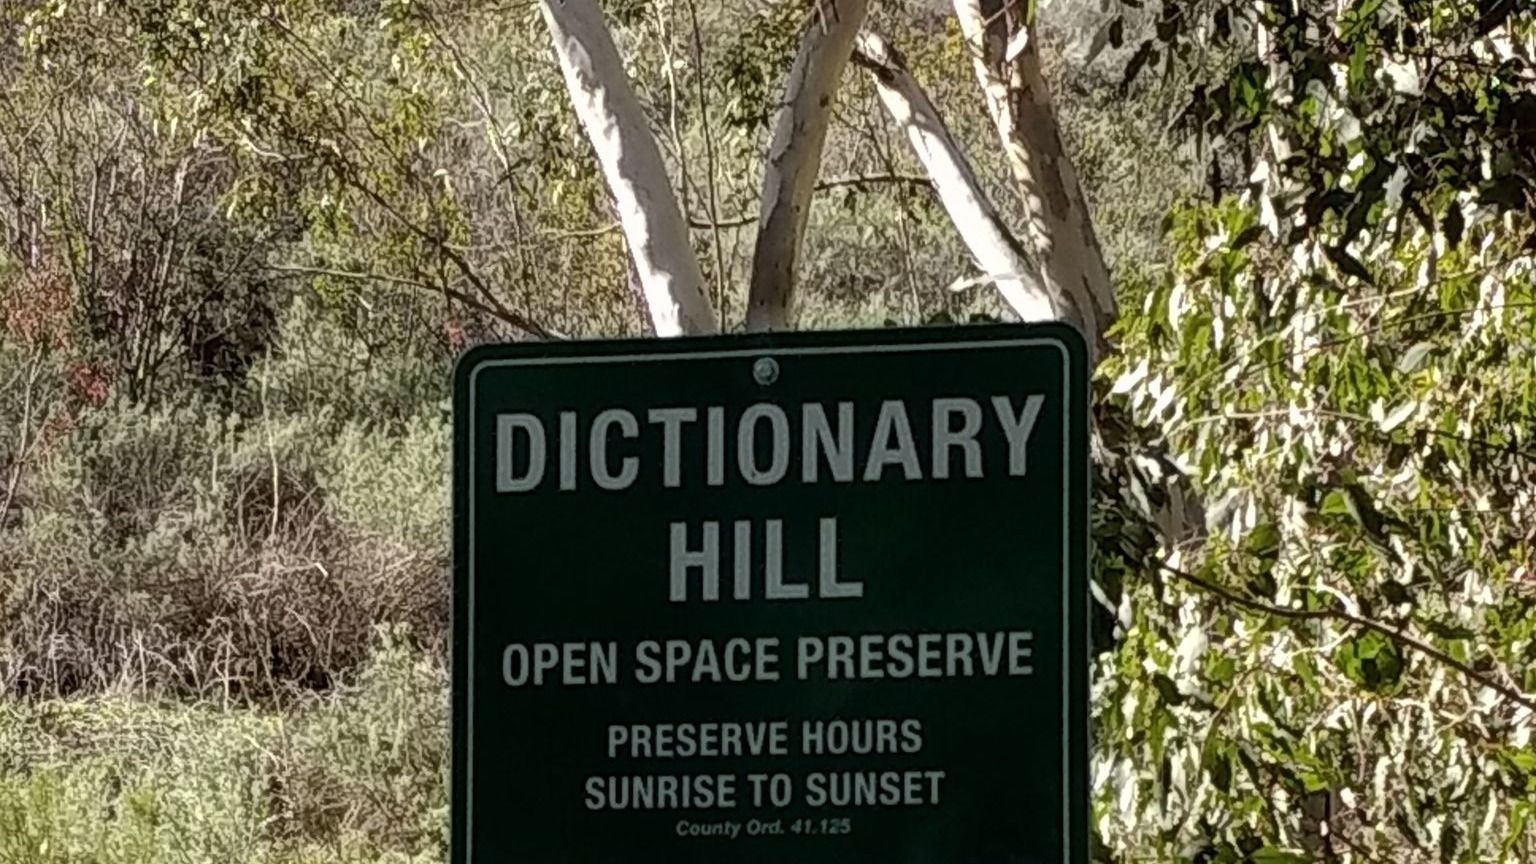 Dictionary Hill.jpg